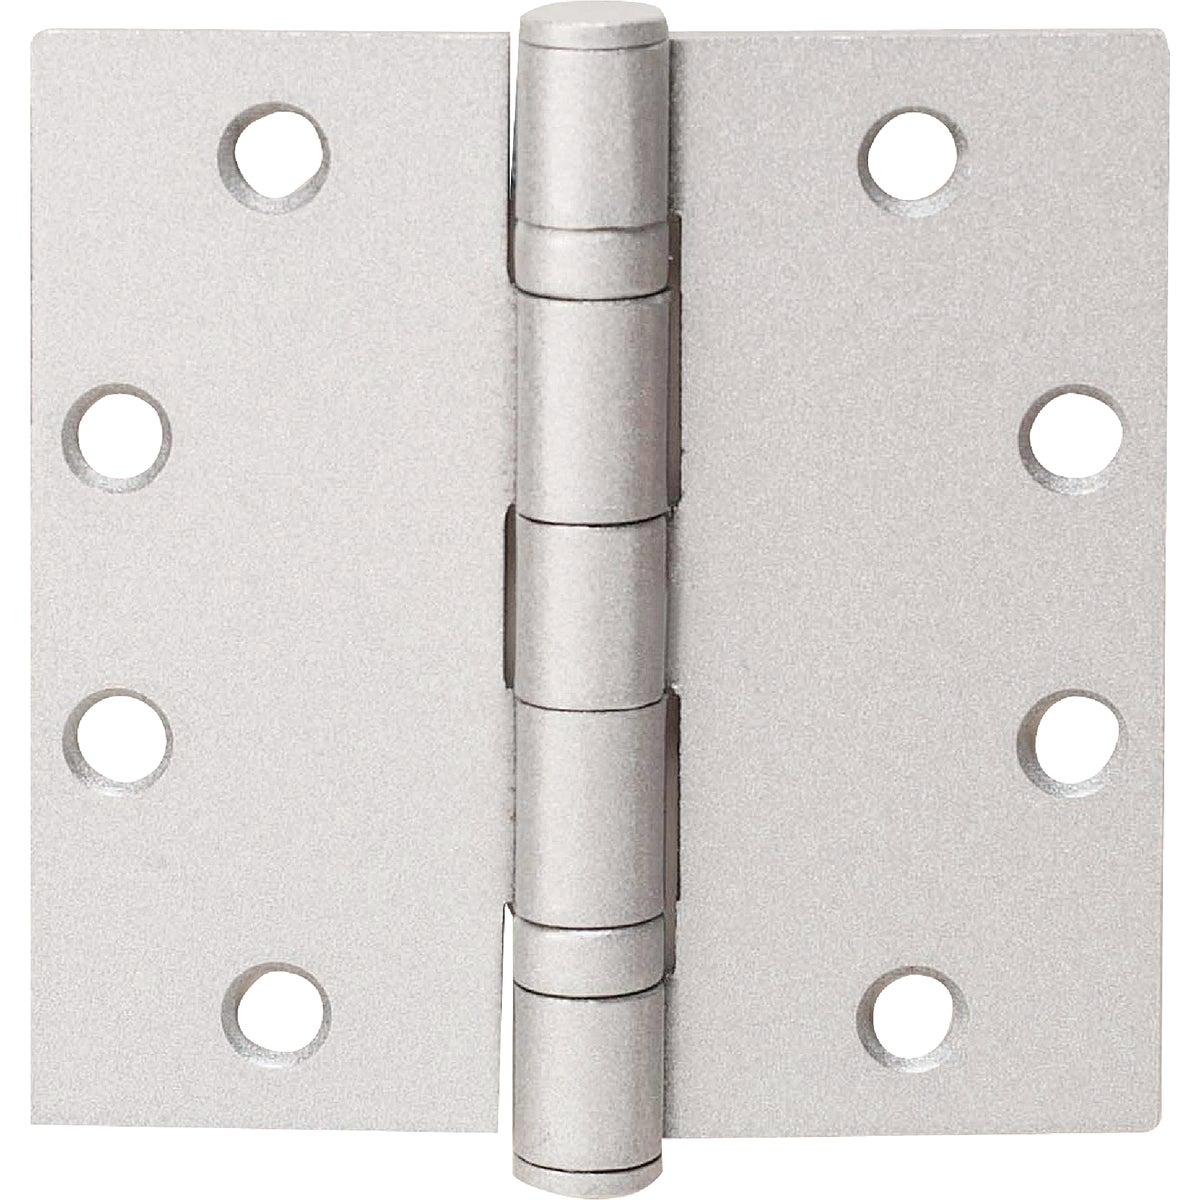 4.5 X 4.5 3PK HINGE 26D - HG100002 by Tell Mfg Inc